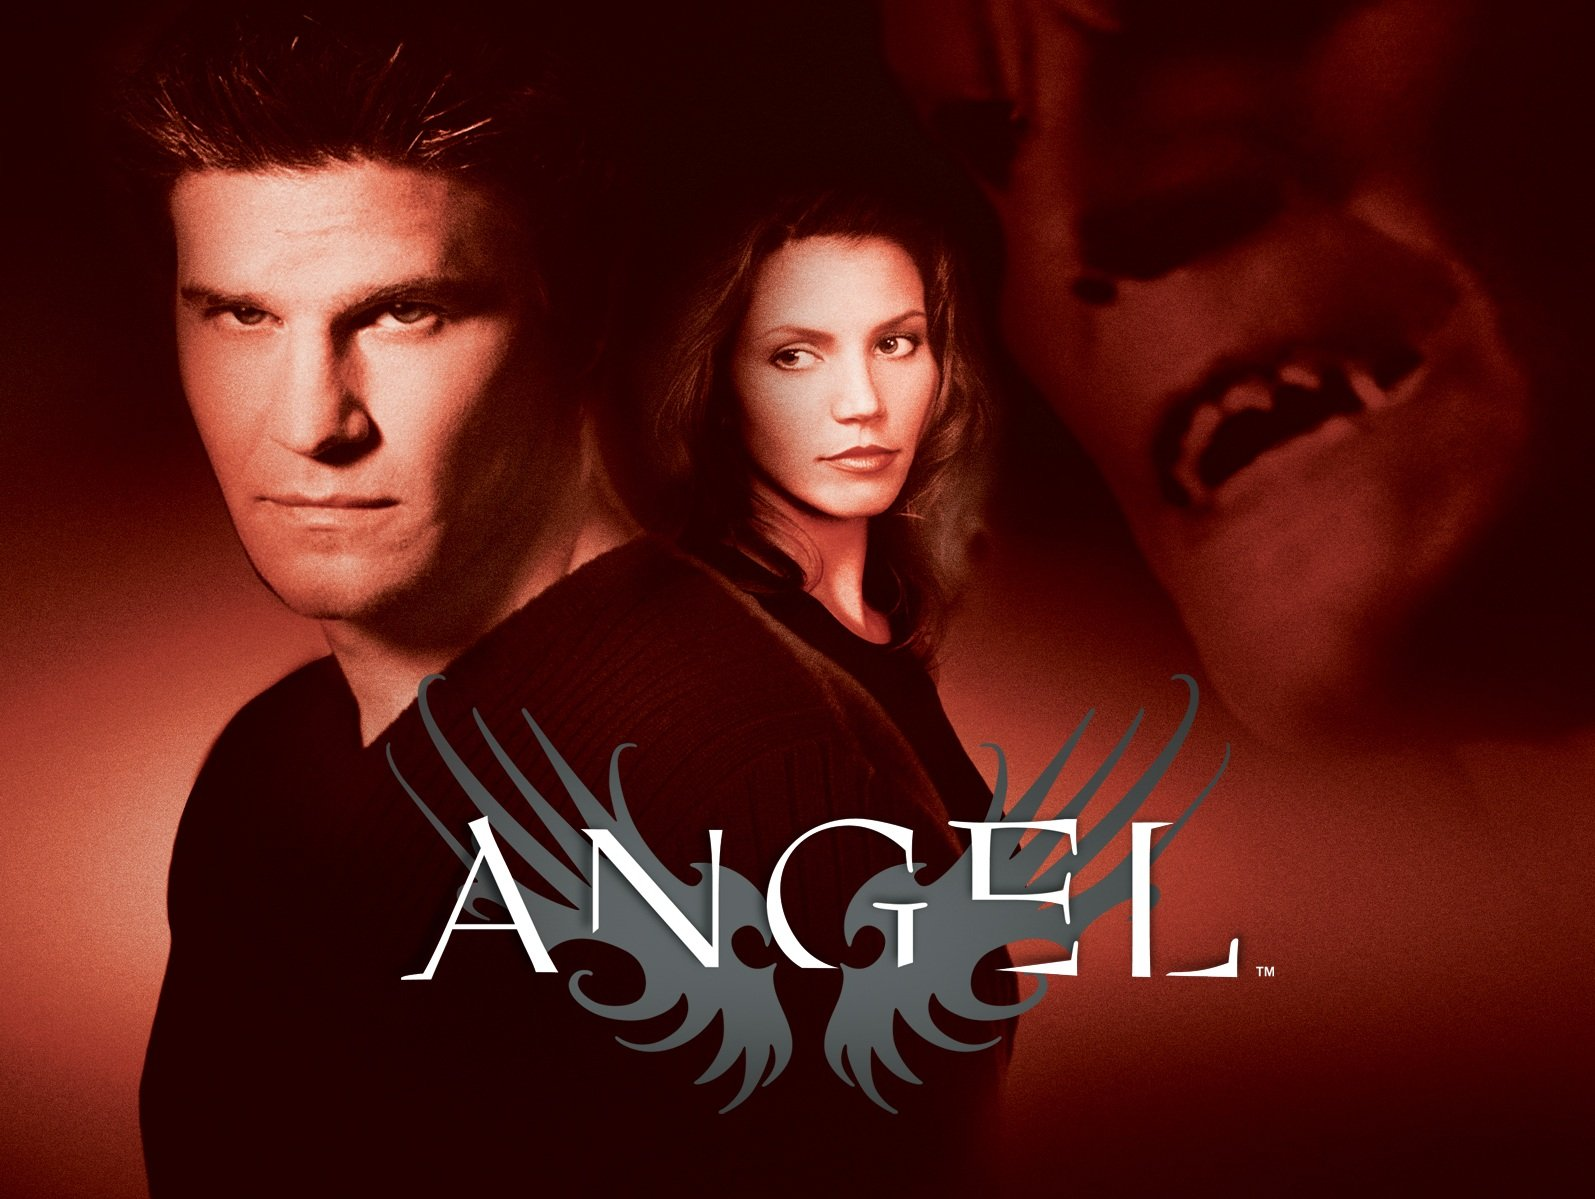 The Angel season 1 DVD cover, with Angel brooding into the camera. Cordelia stands slightly behind him, while an Olan Mills-esque floating image of Angel's vamp face is in the upper right corner.